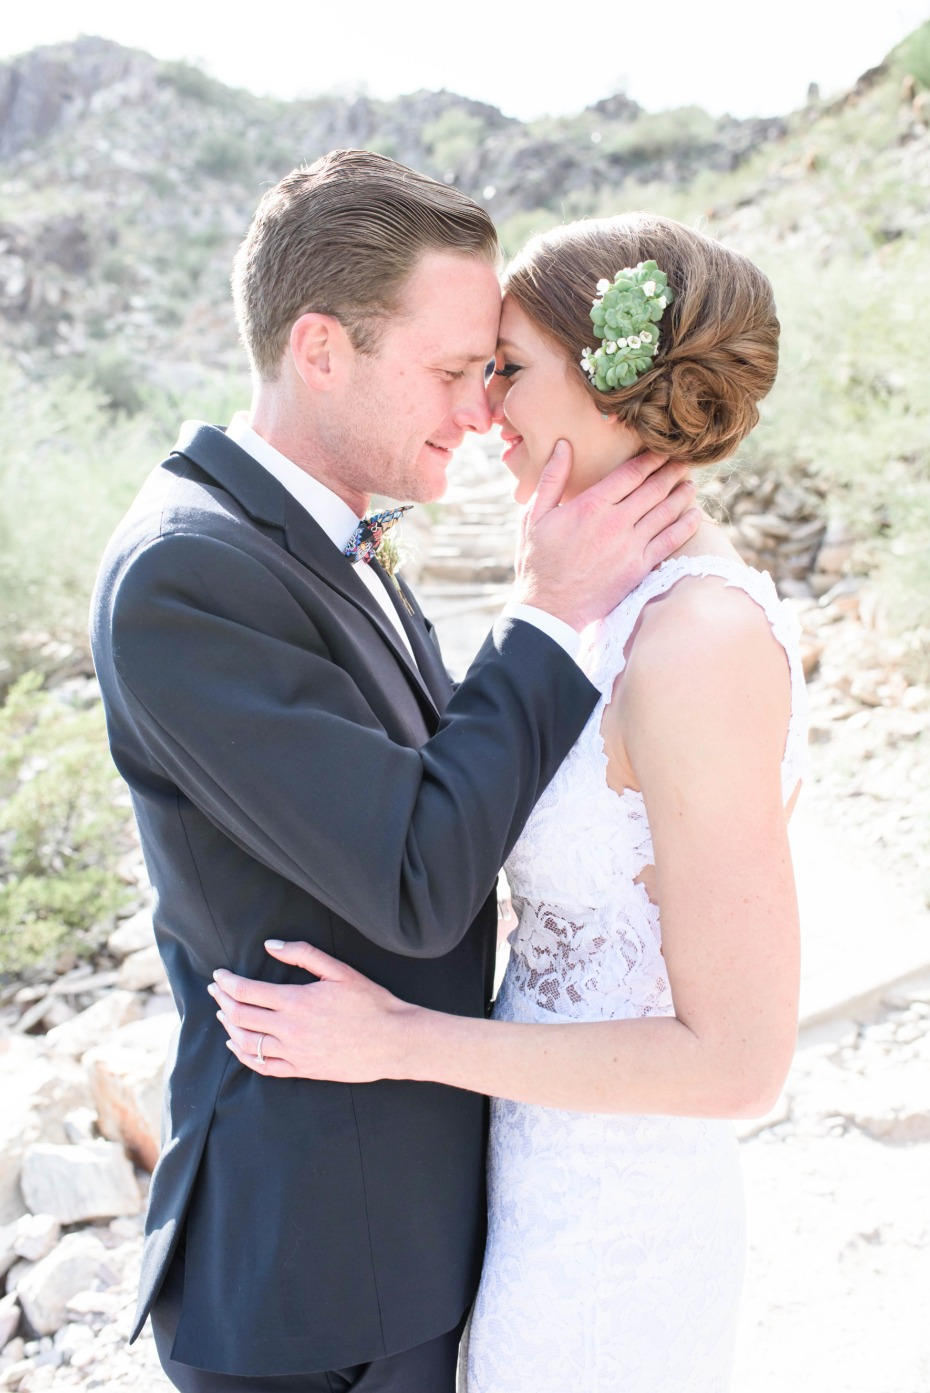 Beautiful desert wedding in Arizona